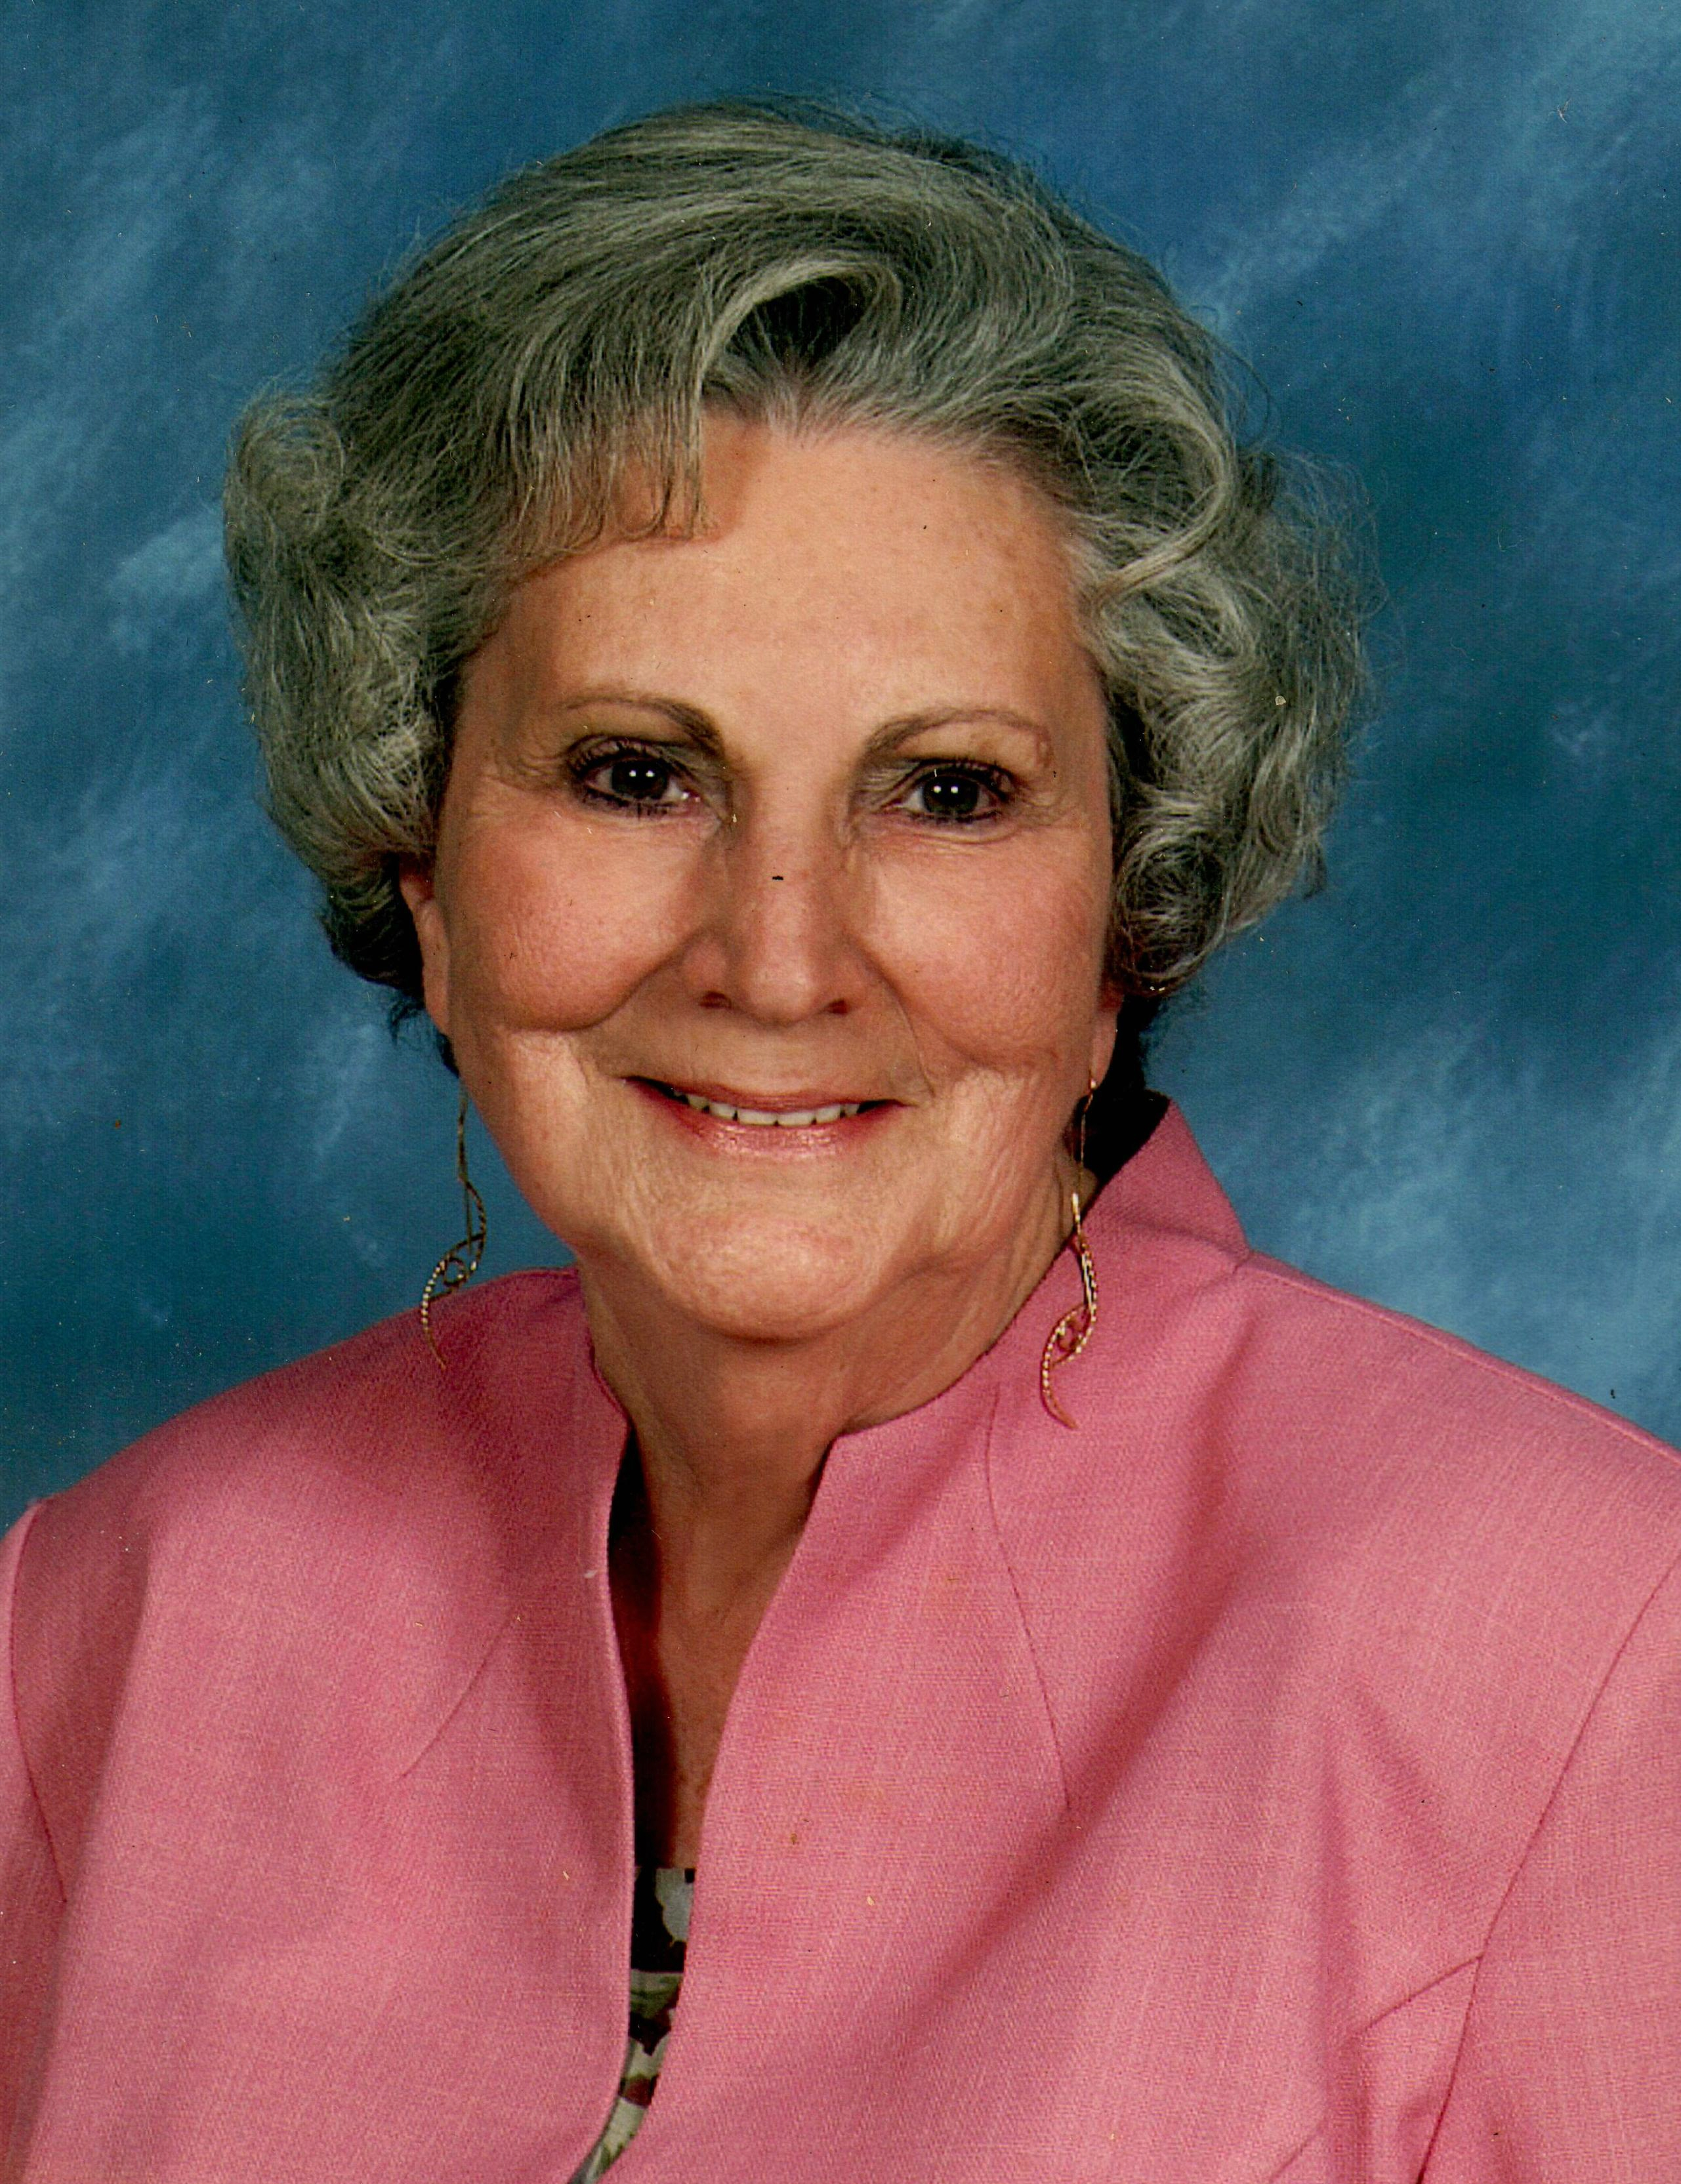 Christine Collins Howard Obituary Toccoa Georgia Acree Davis Funeral Home Tribute Arcive Unclaimed this business has not yet been claimed by the owner or a representative. toccoa georgia acree davis funeral